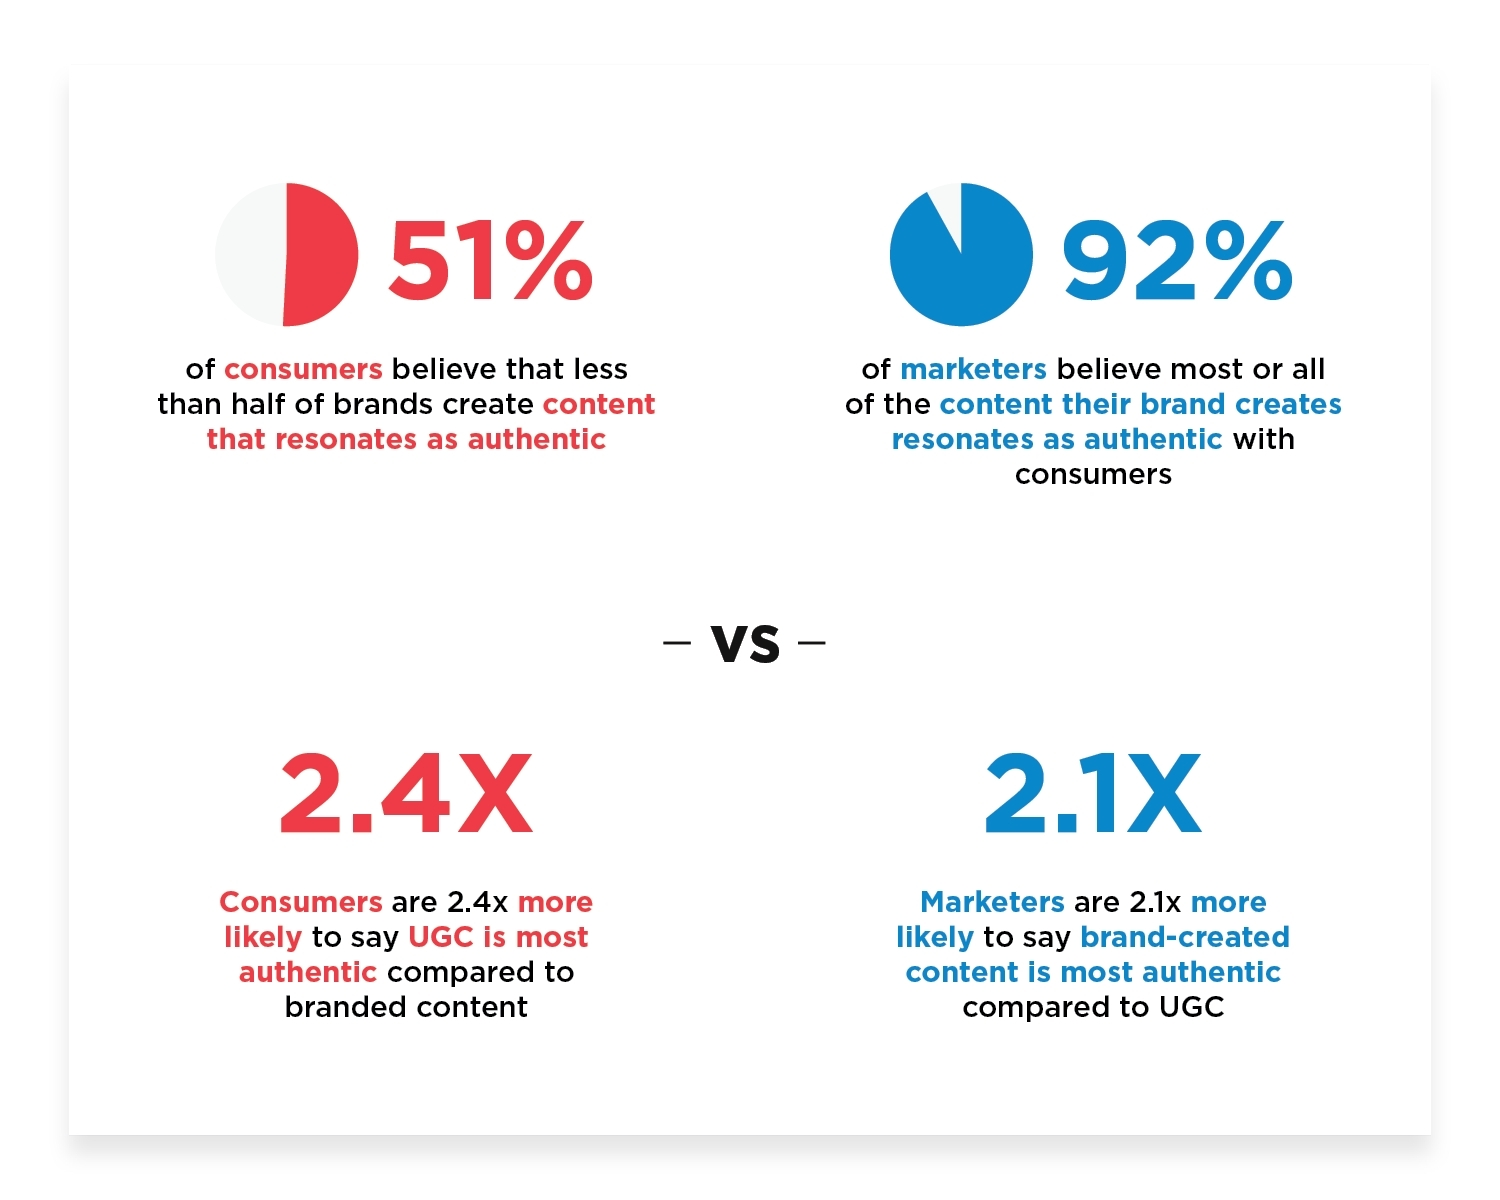 Stackla survey finds that consumers and marketers disagree on the authenticity of branded content vs user-generated content